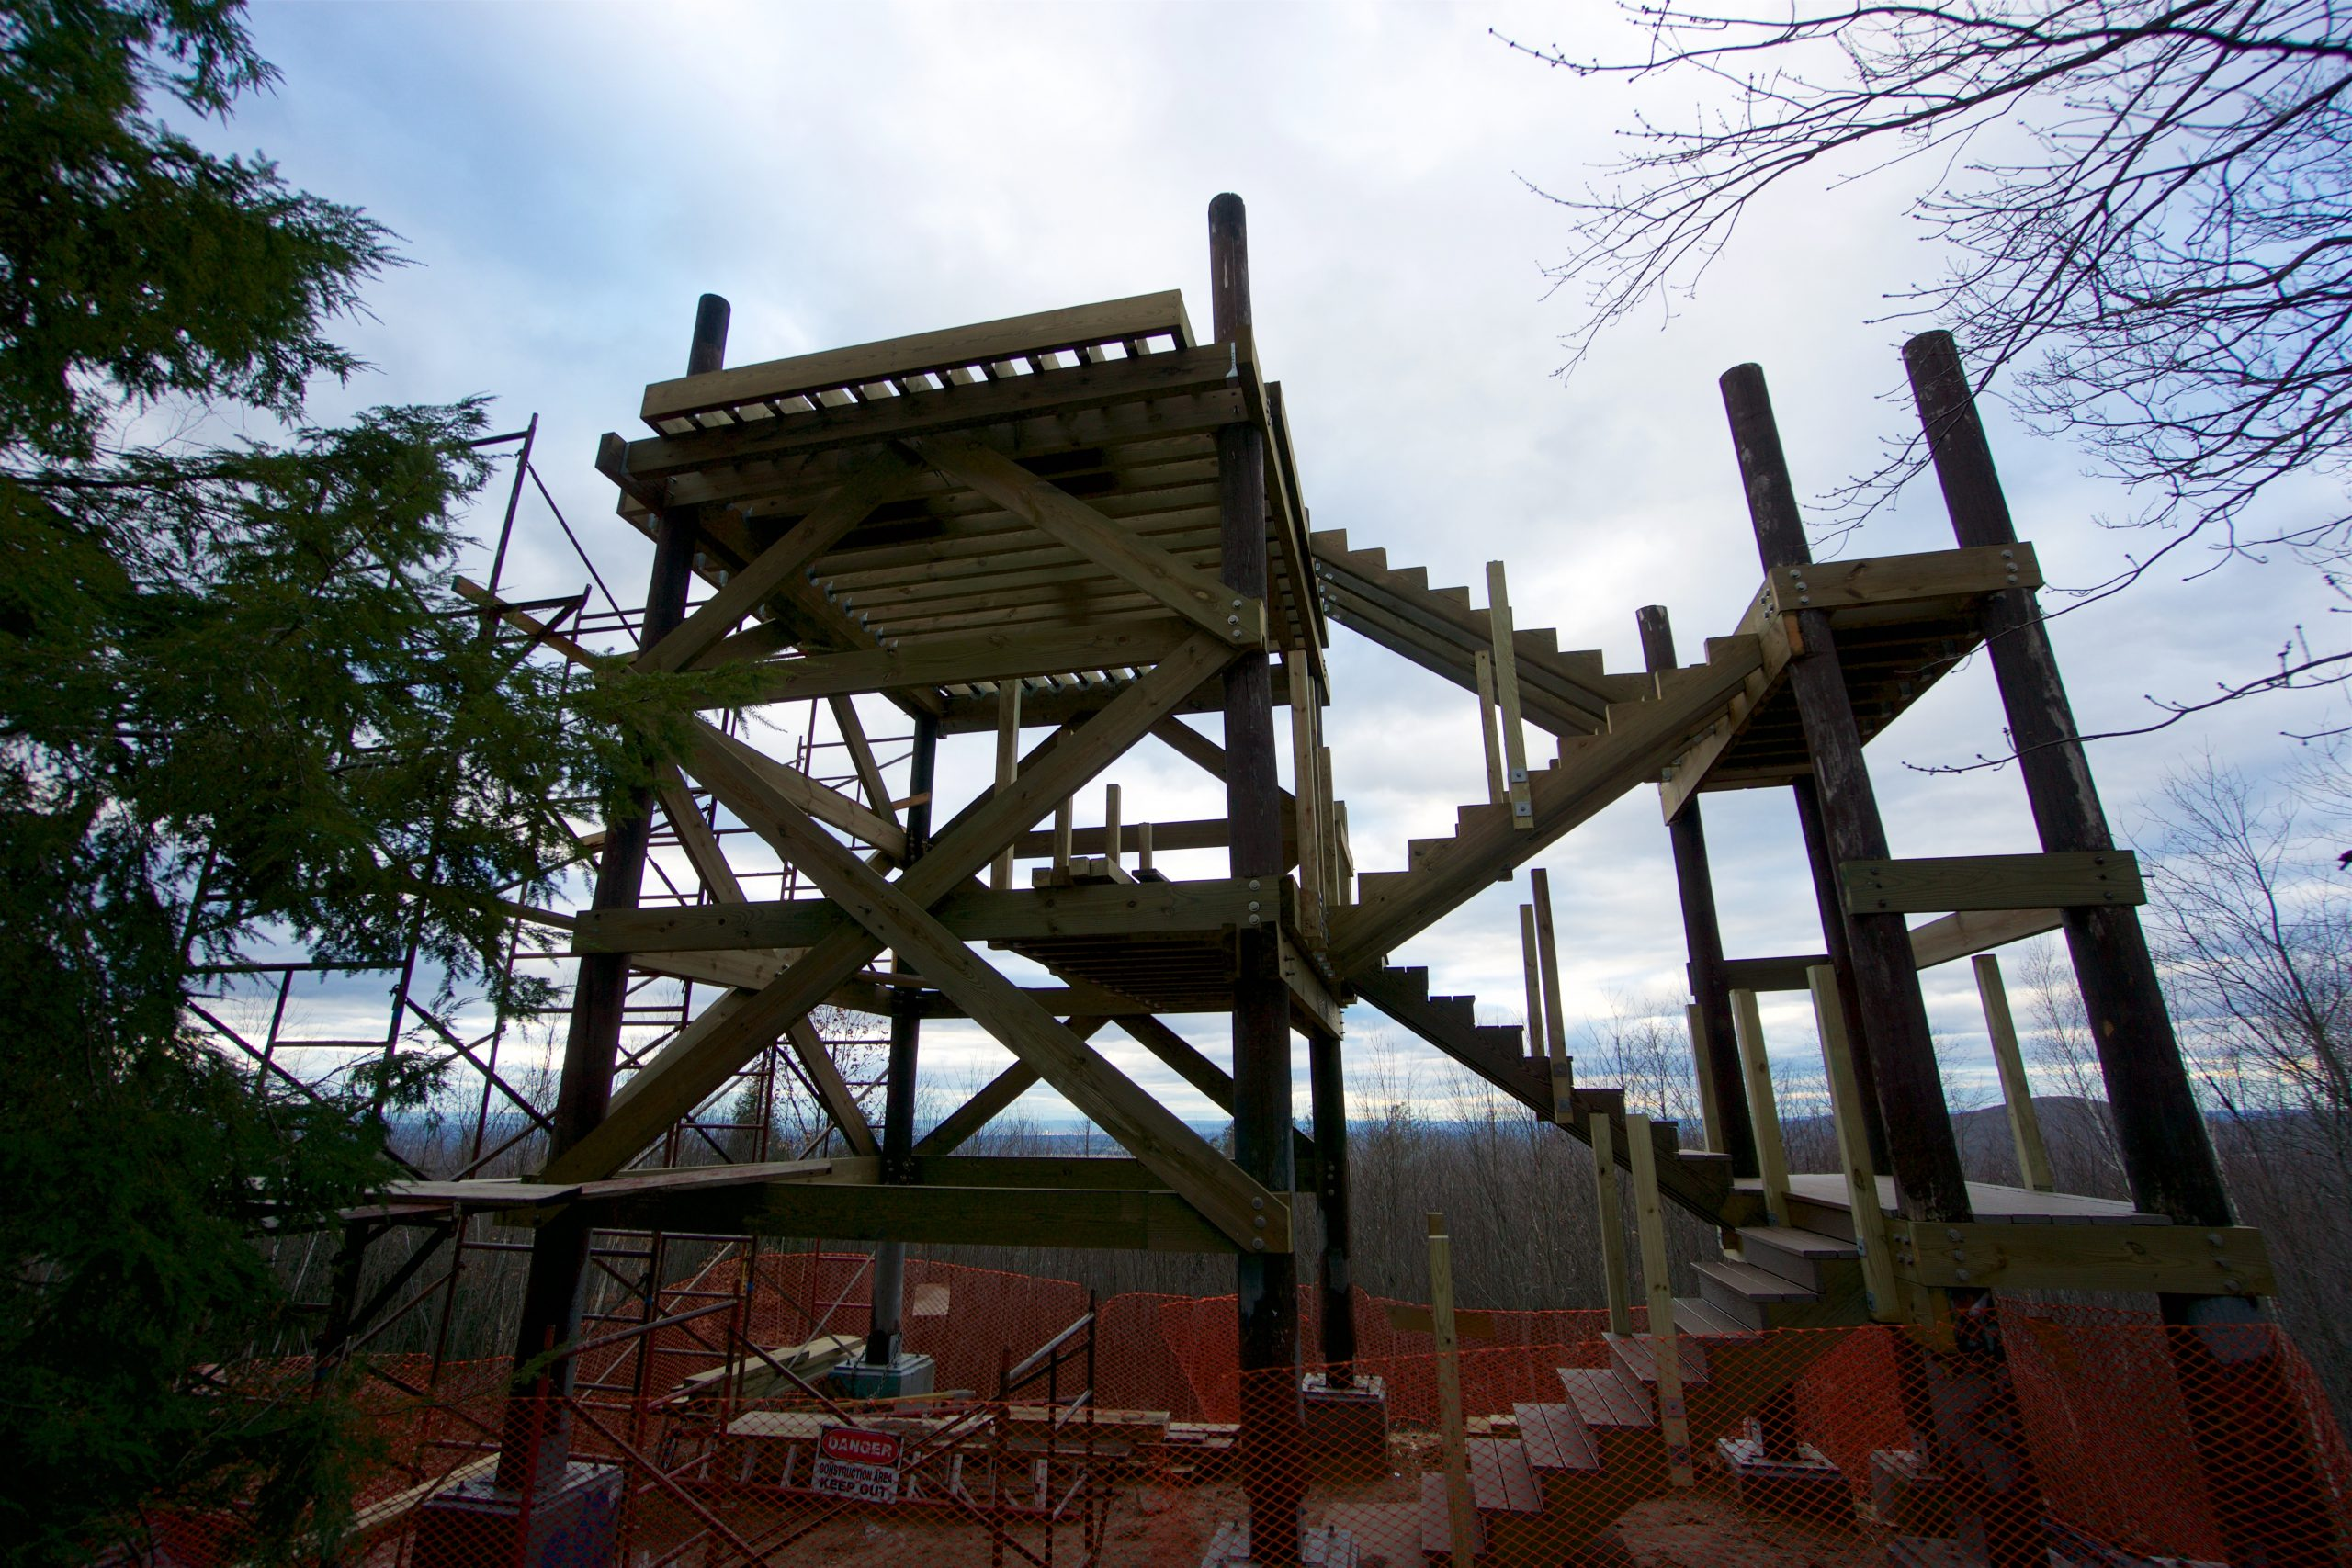 Soapstone Observation Tower